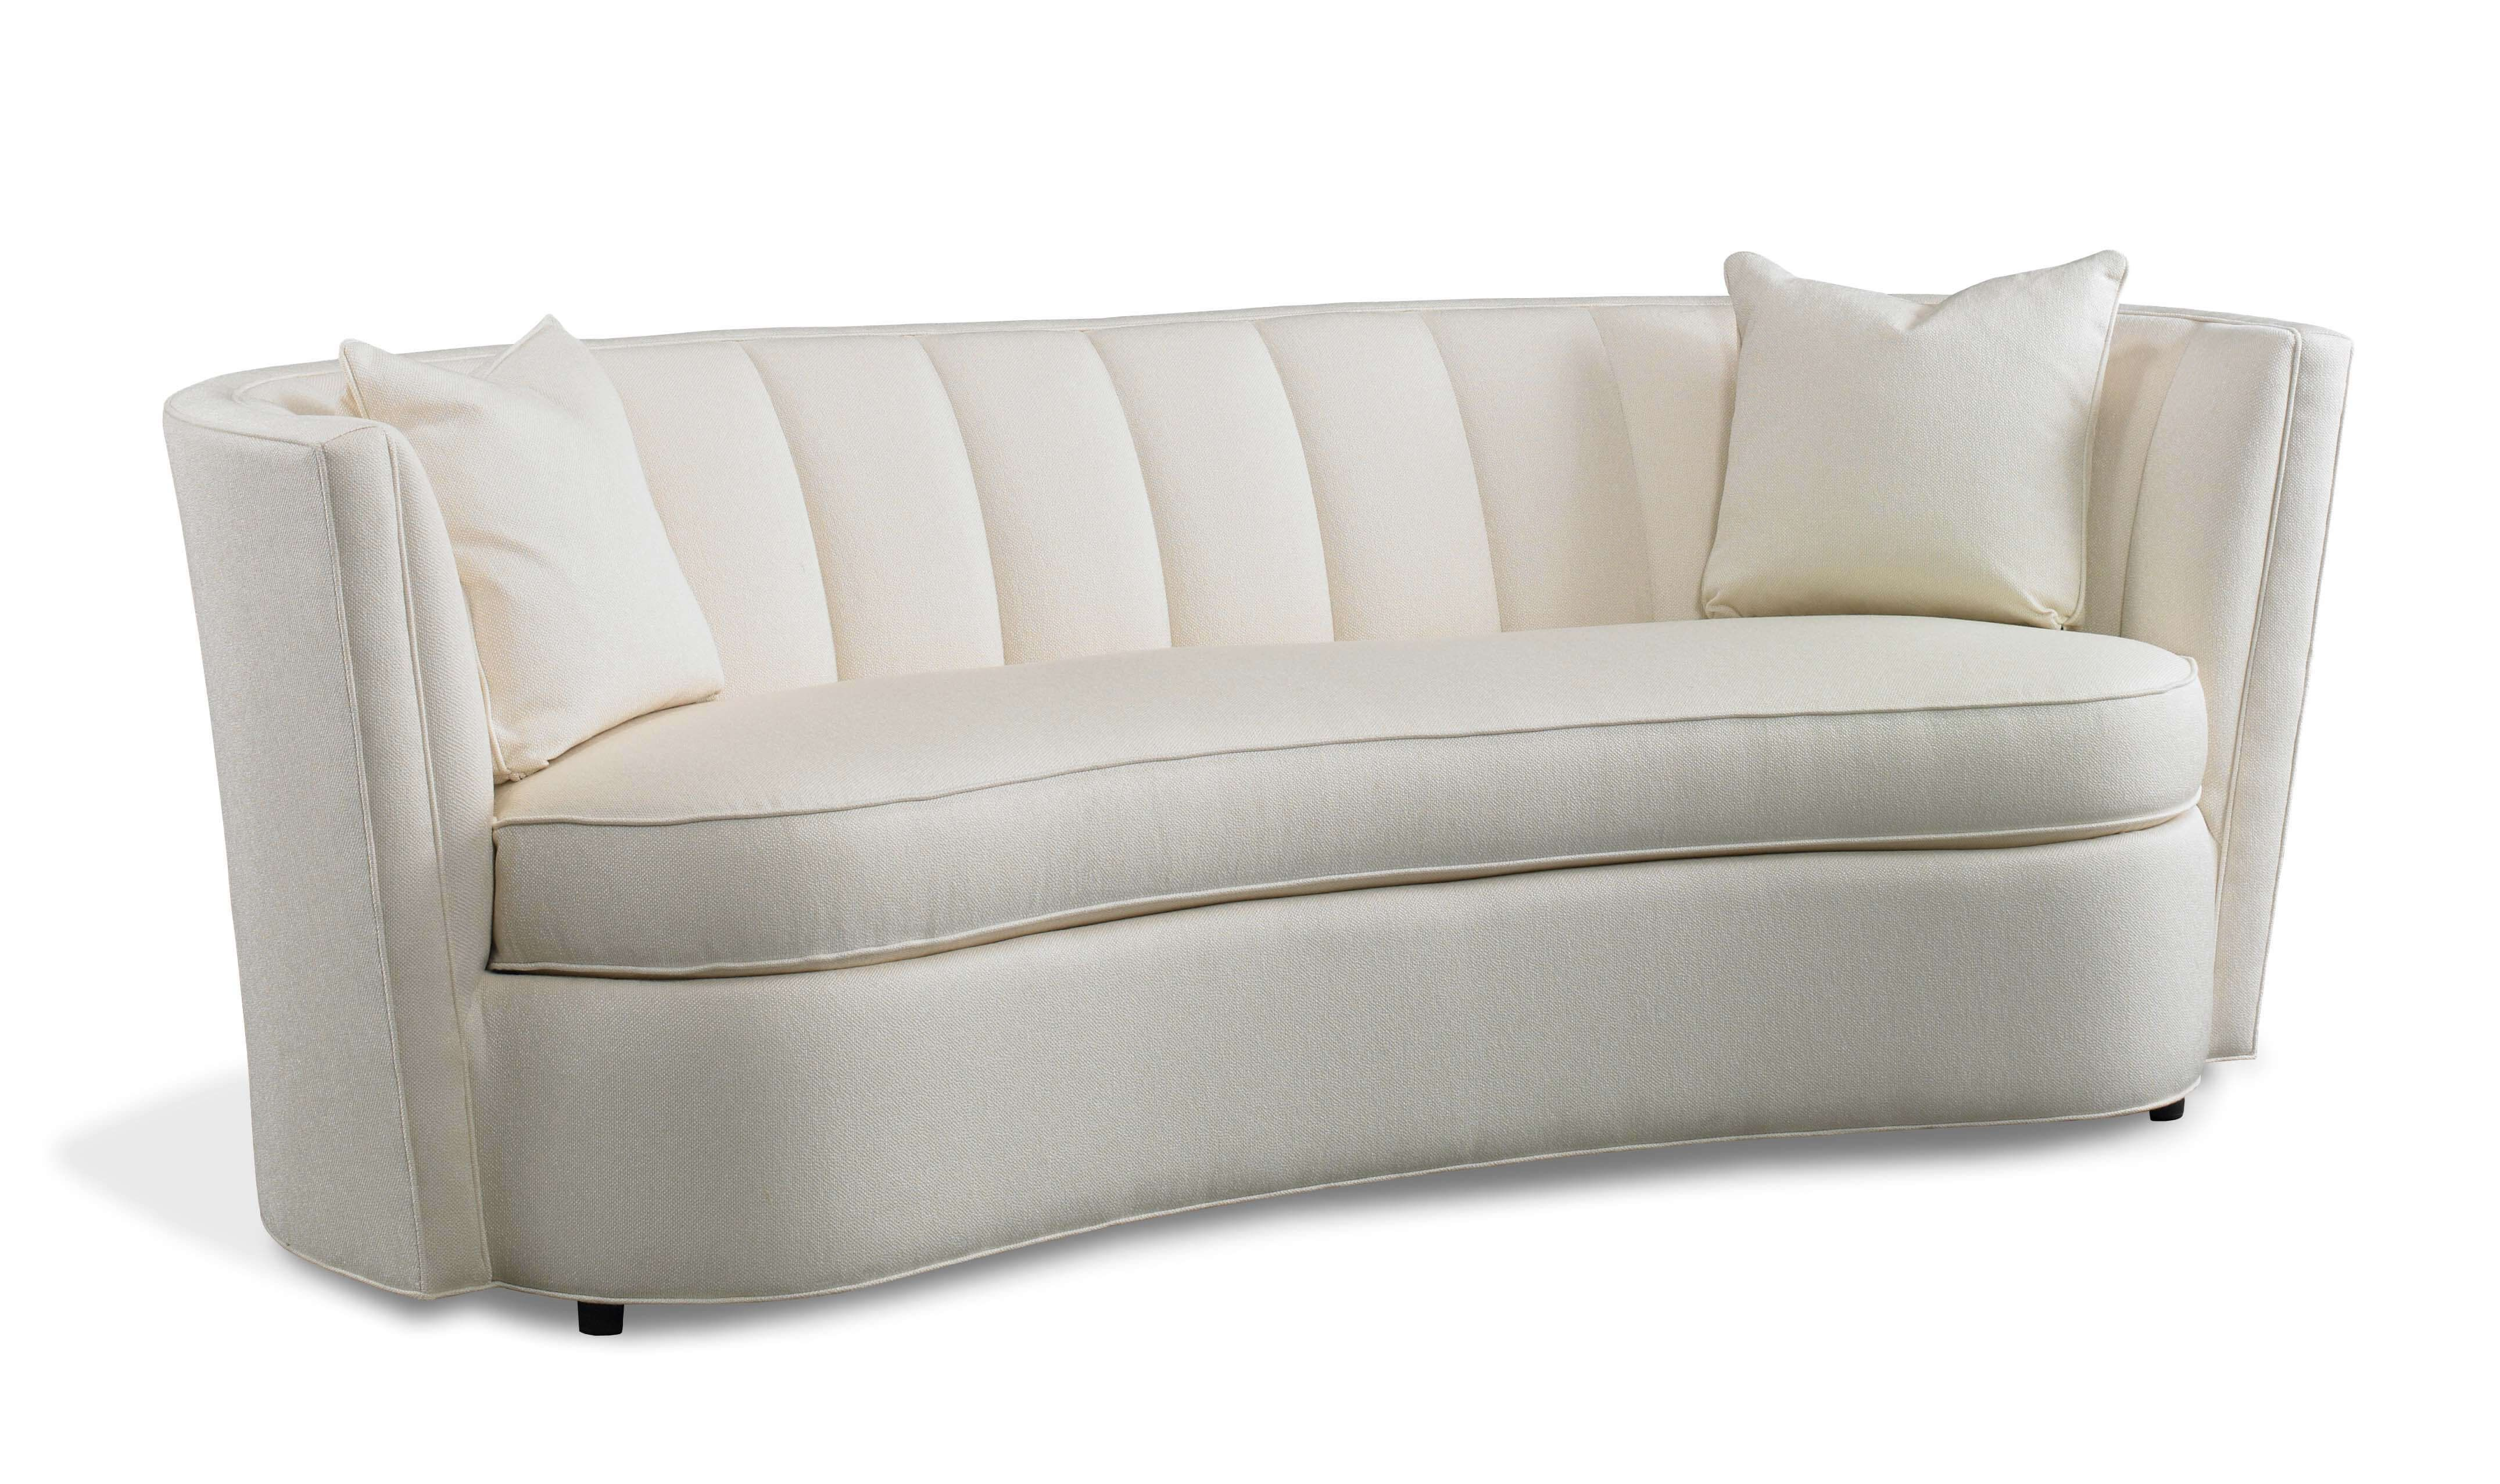 sofas etc towson md used sofa beds uk precedent review home co